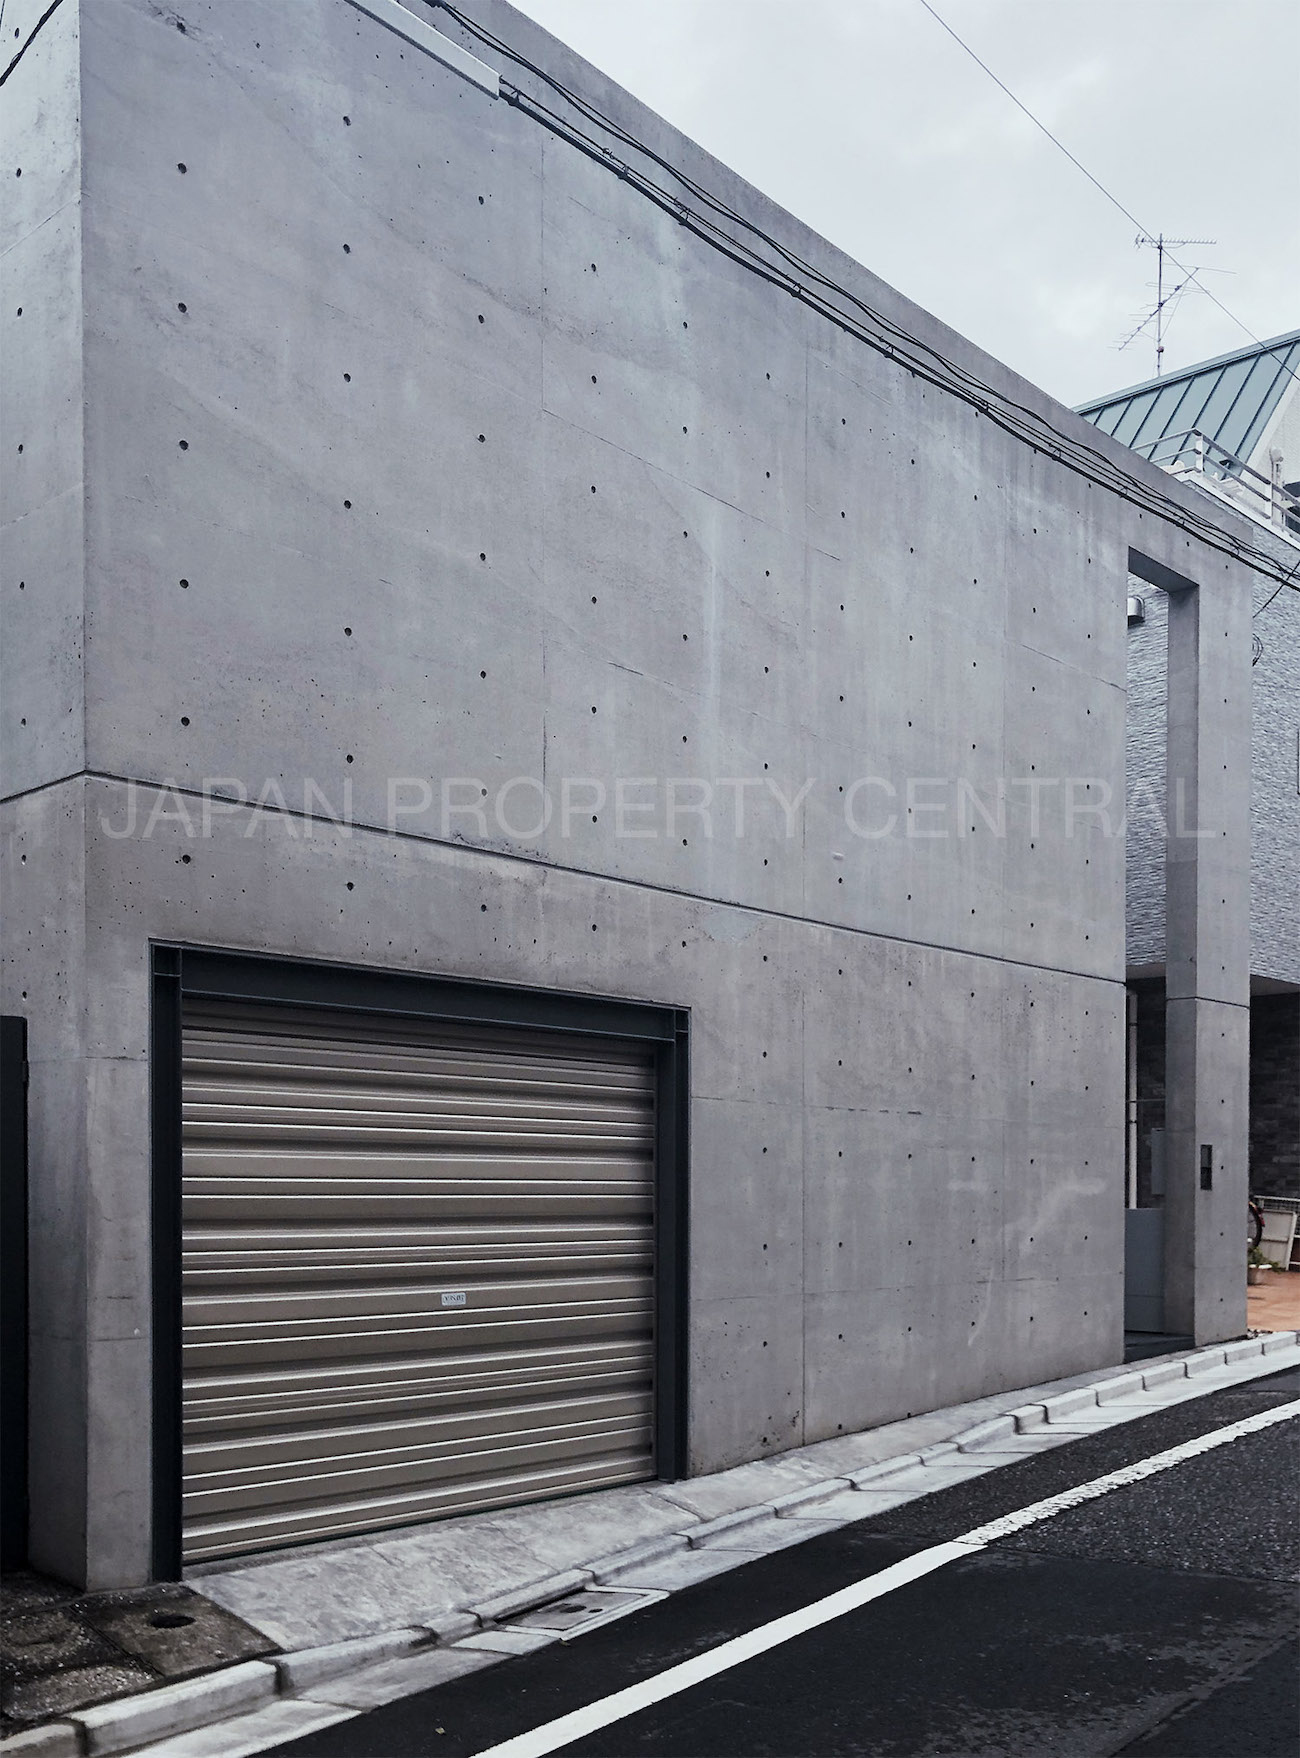 Tadao Ando designed house in Shibuya now under offer  JAPAN PROPERTY CENTRAL